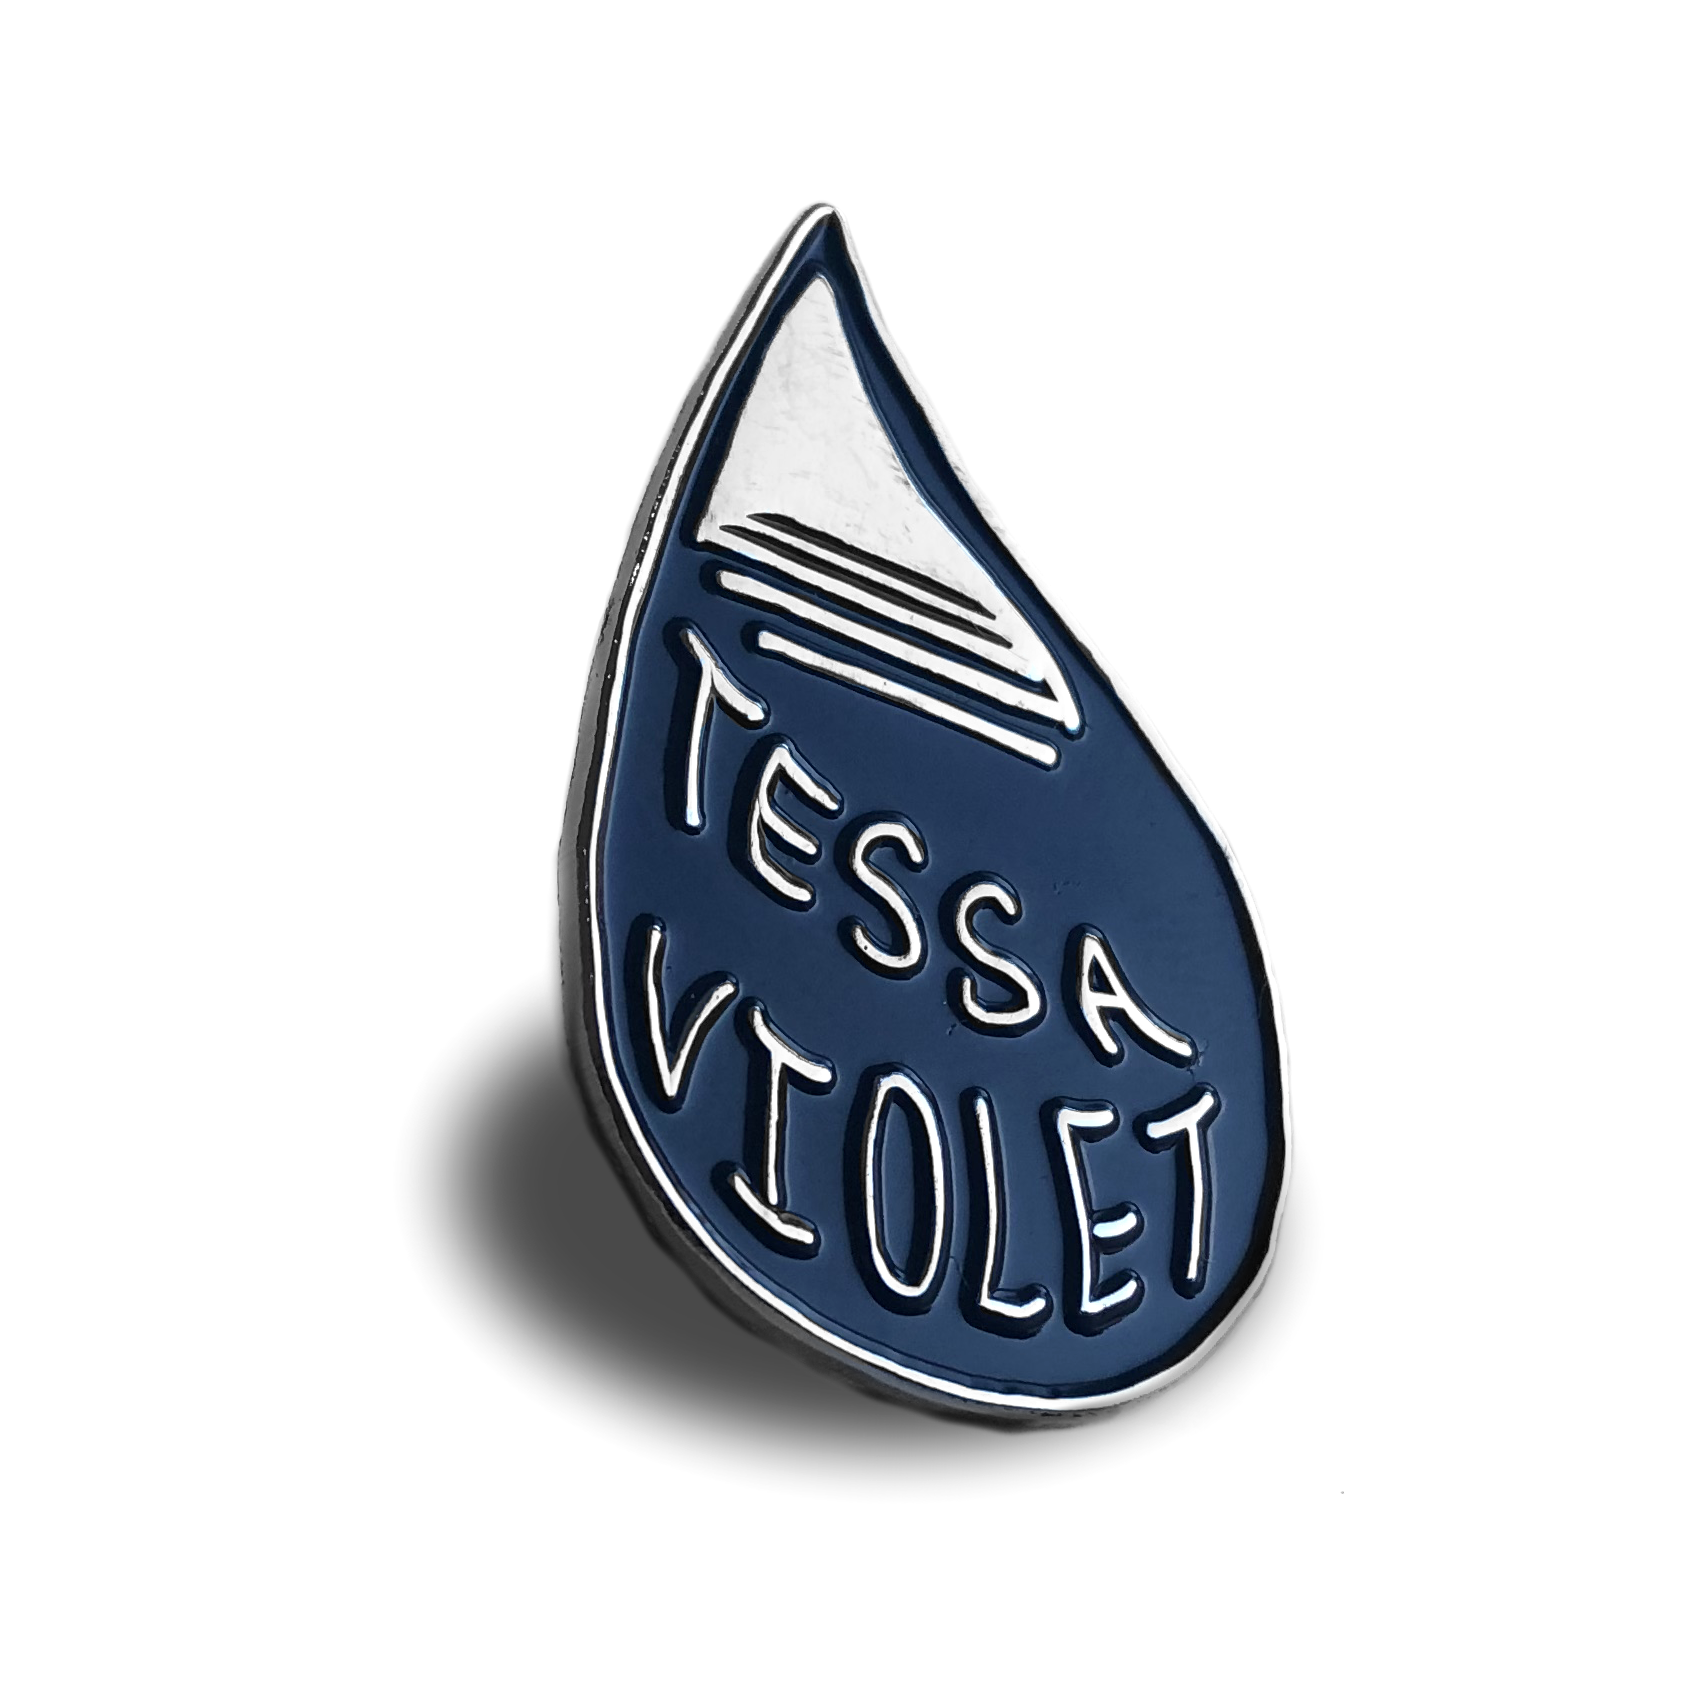 Tessa Pin Badge